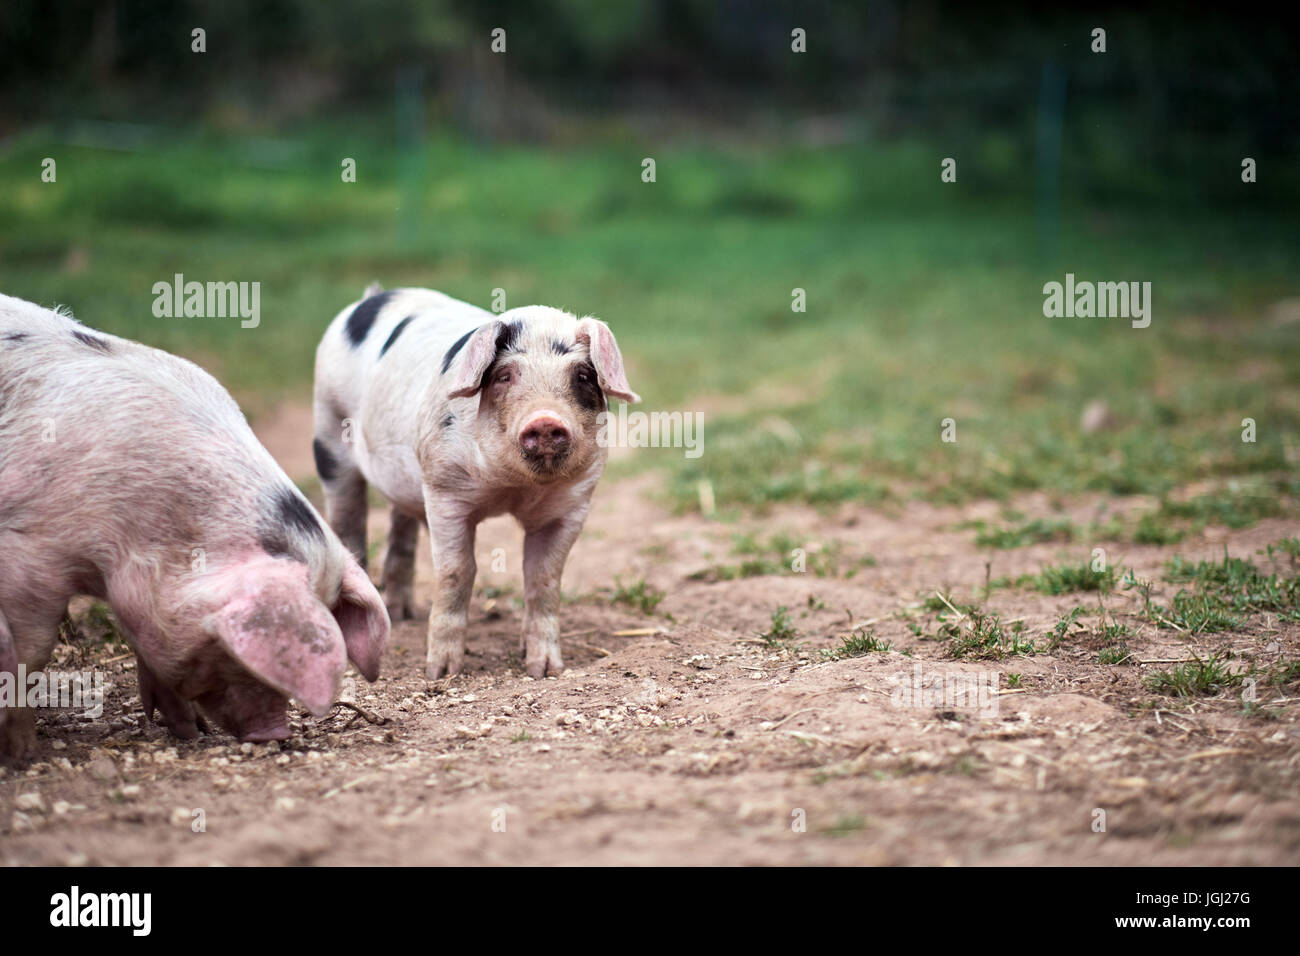 Piglet (Sus scrofa domestica) at an organic farm - Stock Image